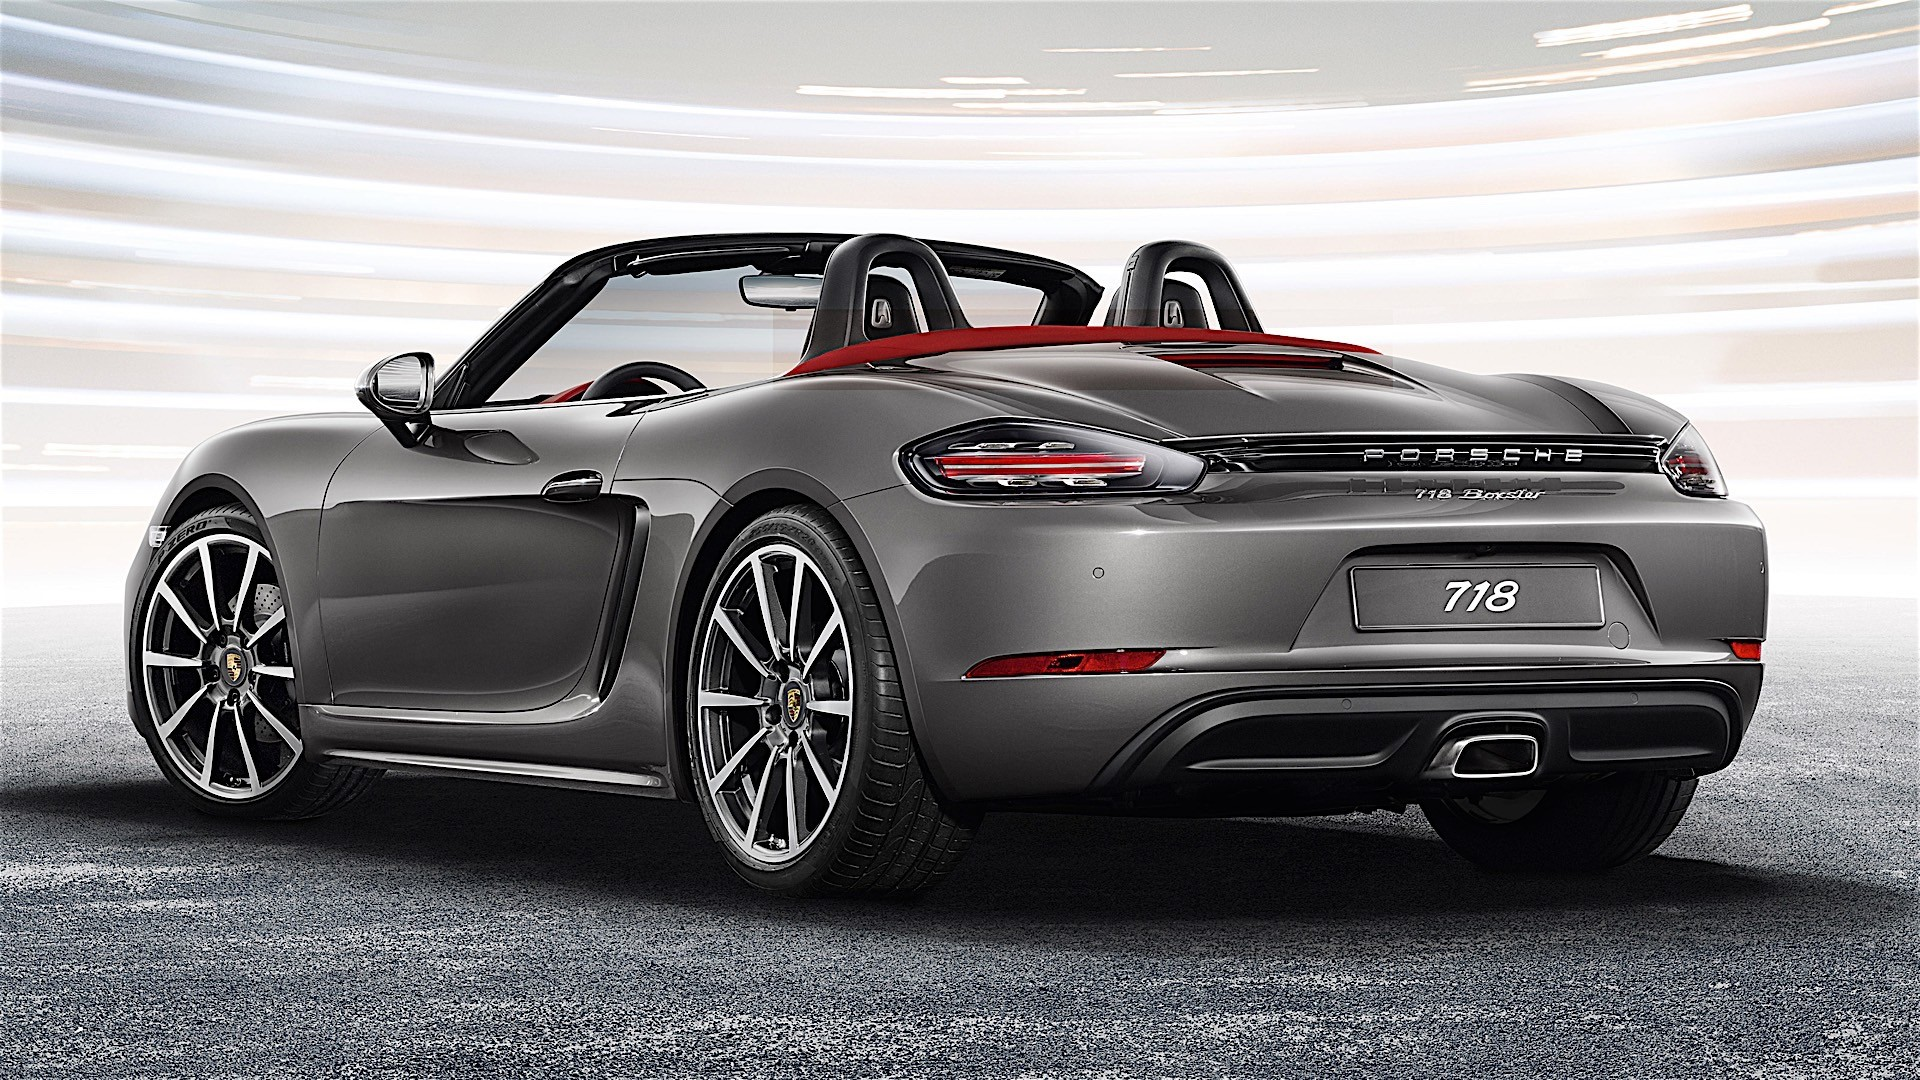 porsche 718 boxster 2016 2017 autoevolution. Black Bedroom Furniture Sets. Home Design Ideas